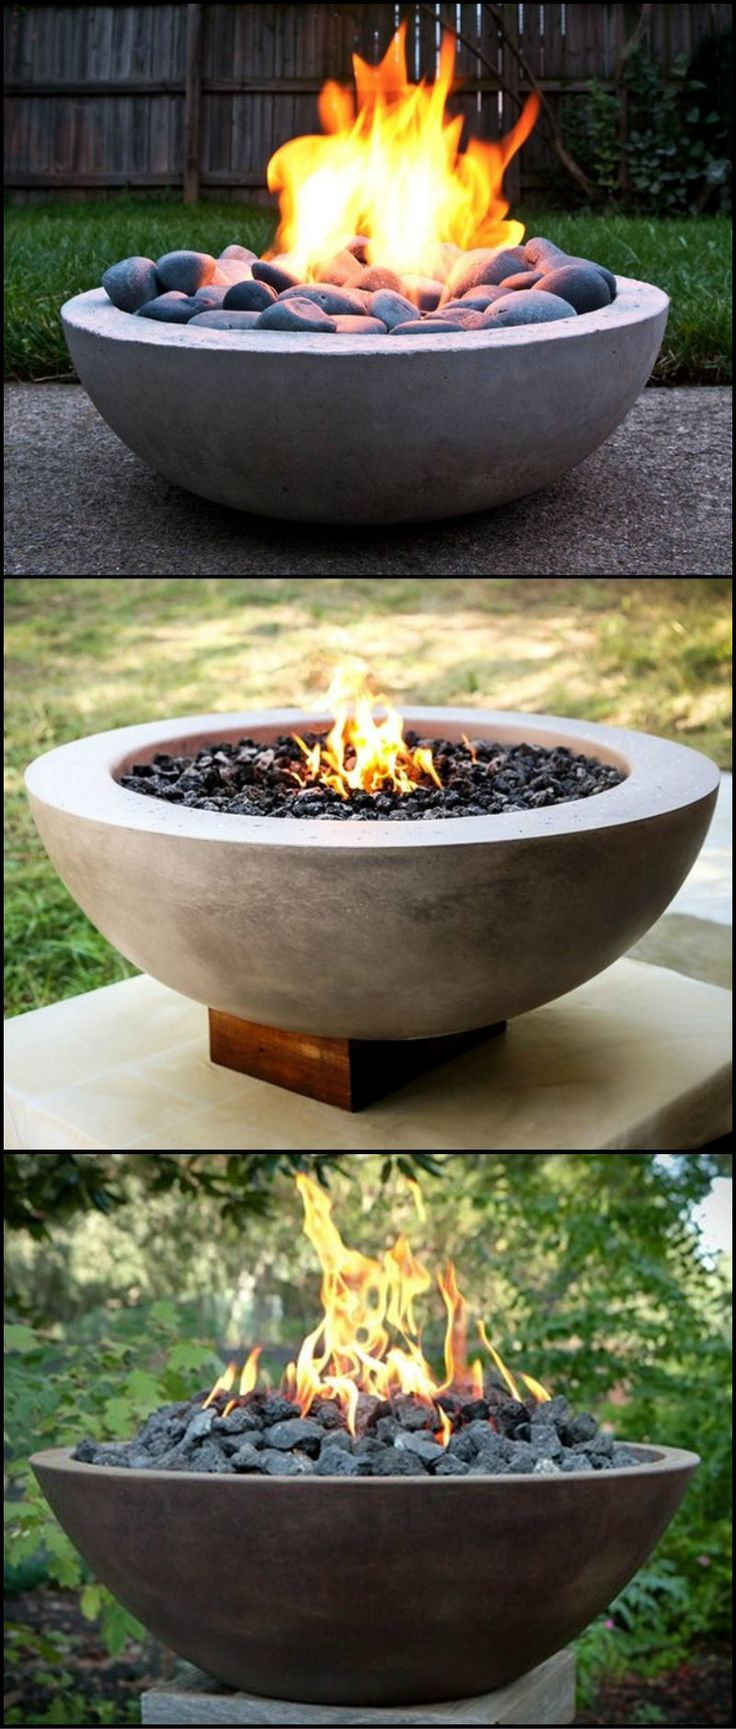 Build a great looking fire pit at a fraction of the cost of a commercially produced fire pit.  http://theownerbuildernetwork.co/o6cr  Plus you get the satisfaction of making it yourself.